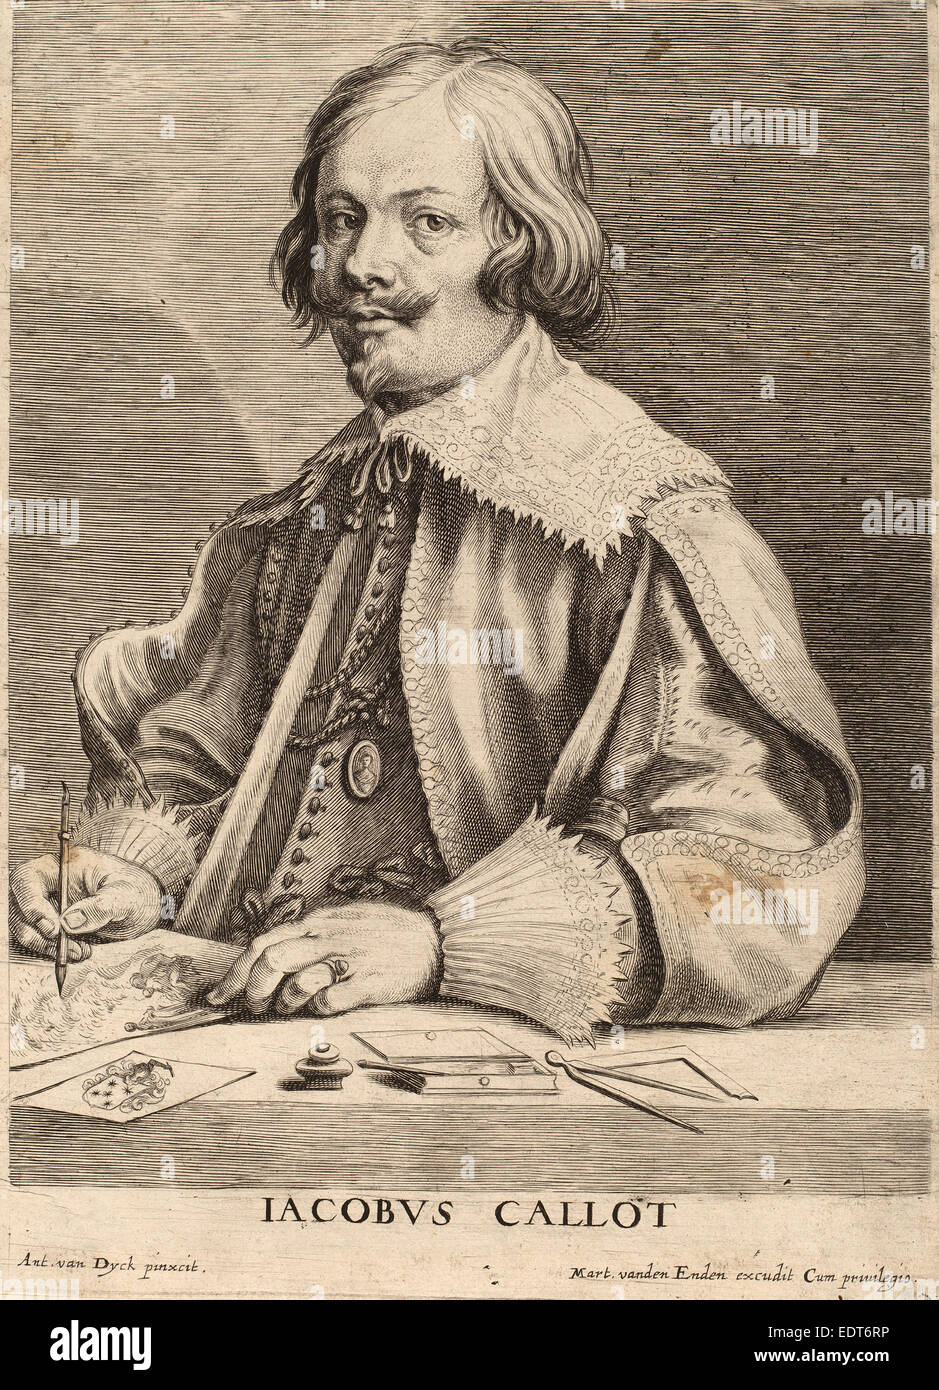 Lucas Emil Vorsterman after Sir Anthony van Dyck (Flemish, 1595 - 1675), Jacques Callot, engraving - Stock Image